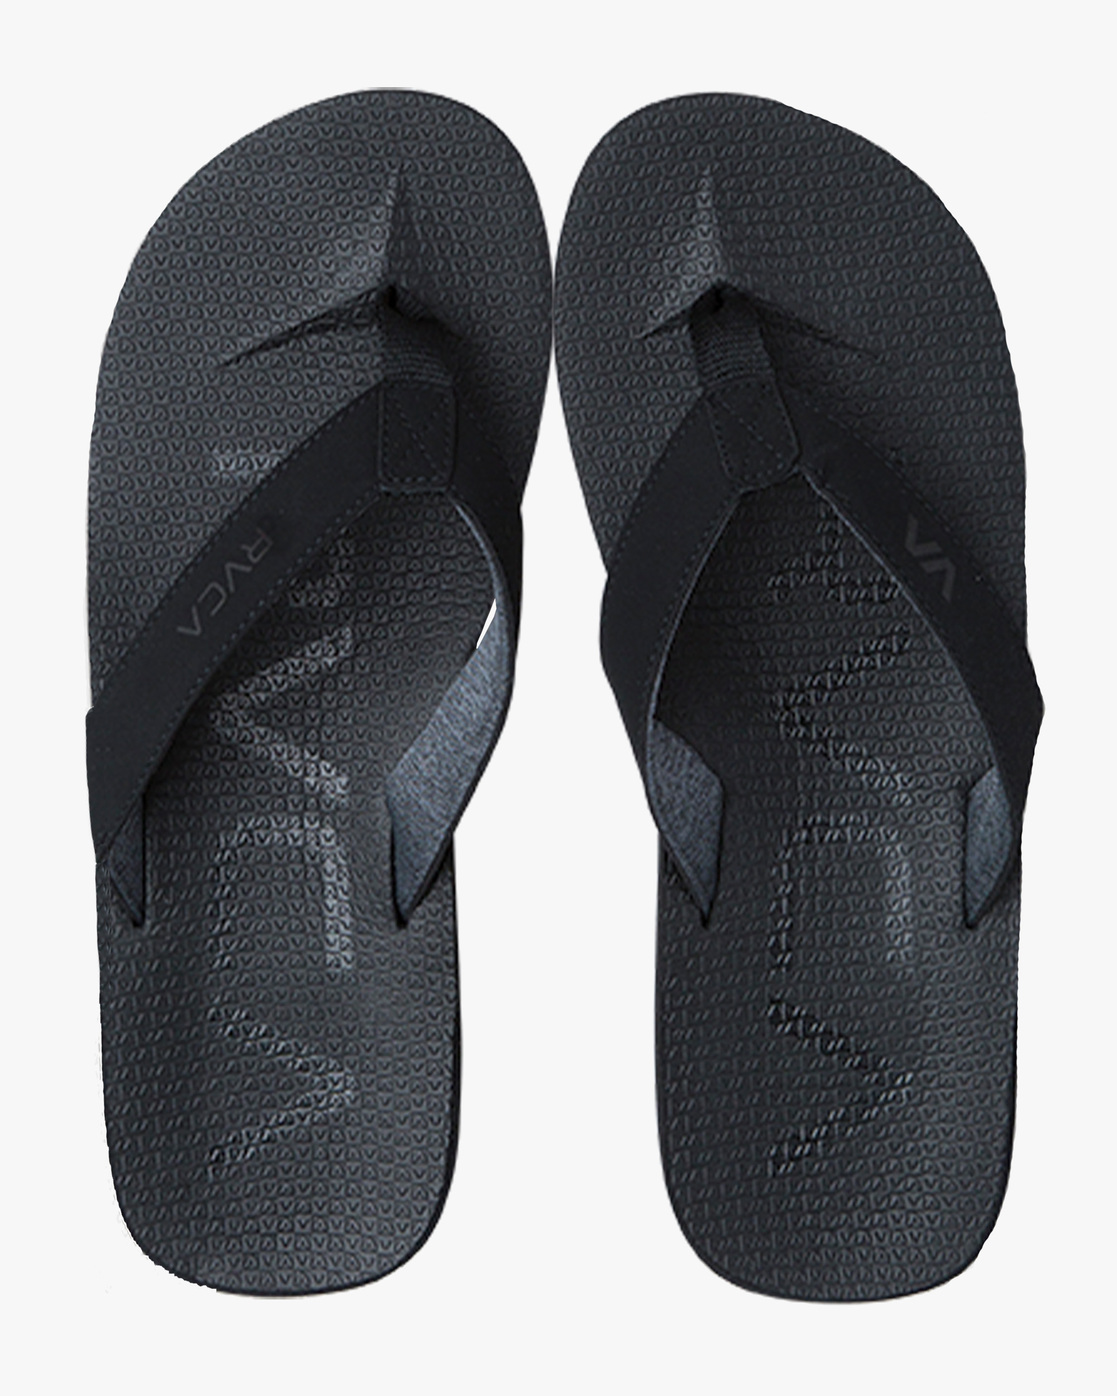 0 Subtropic Sandals Black MFASPSTS RVCA